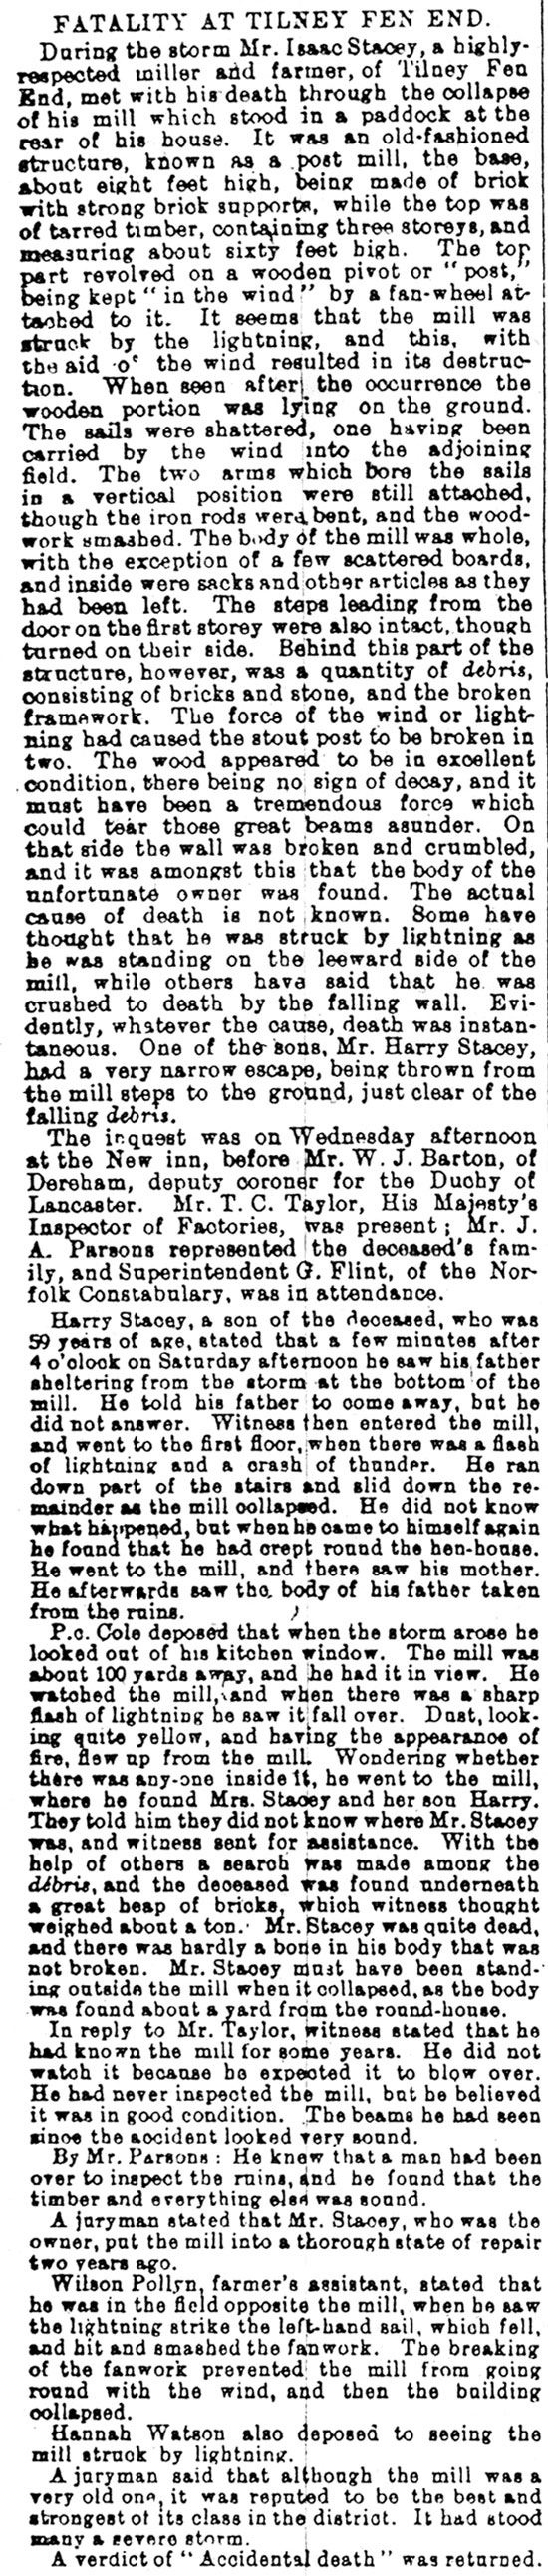 Lynn Advertiser - 28th February 1908